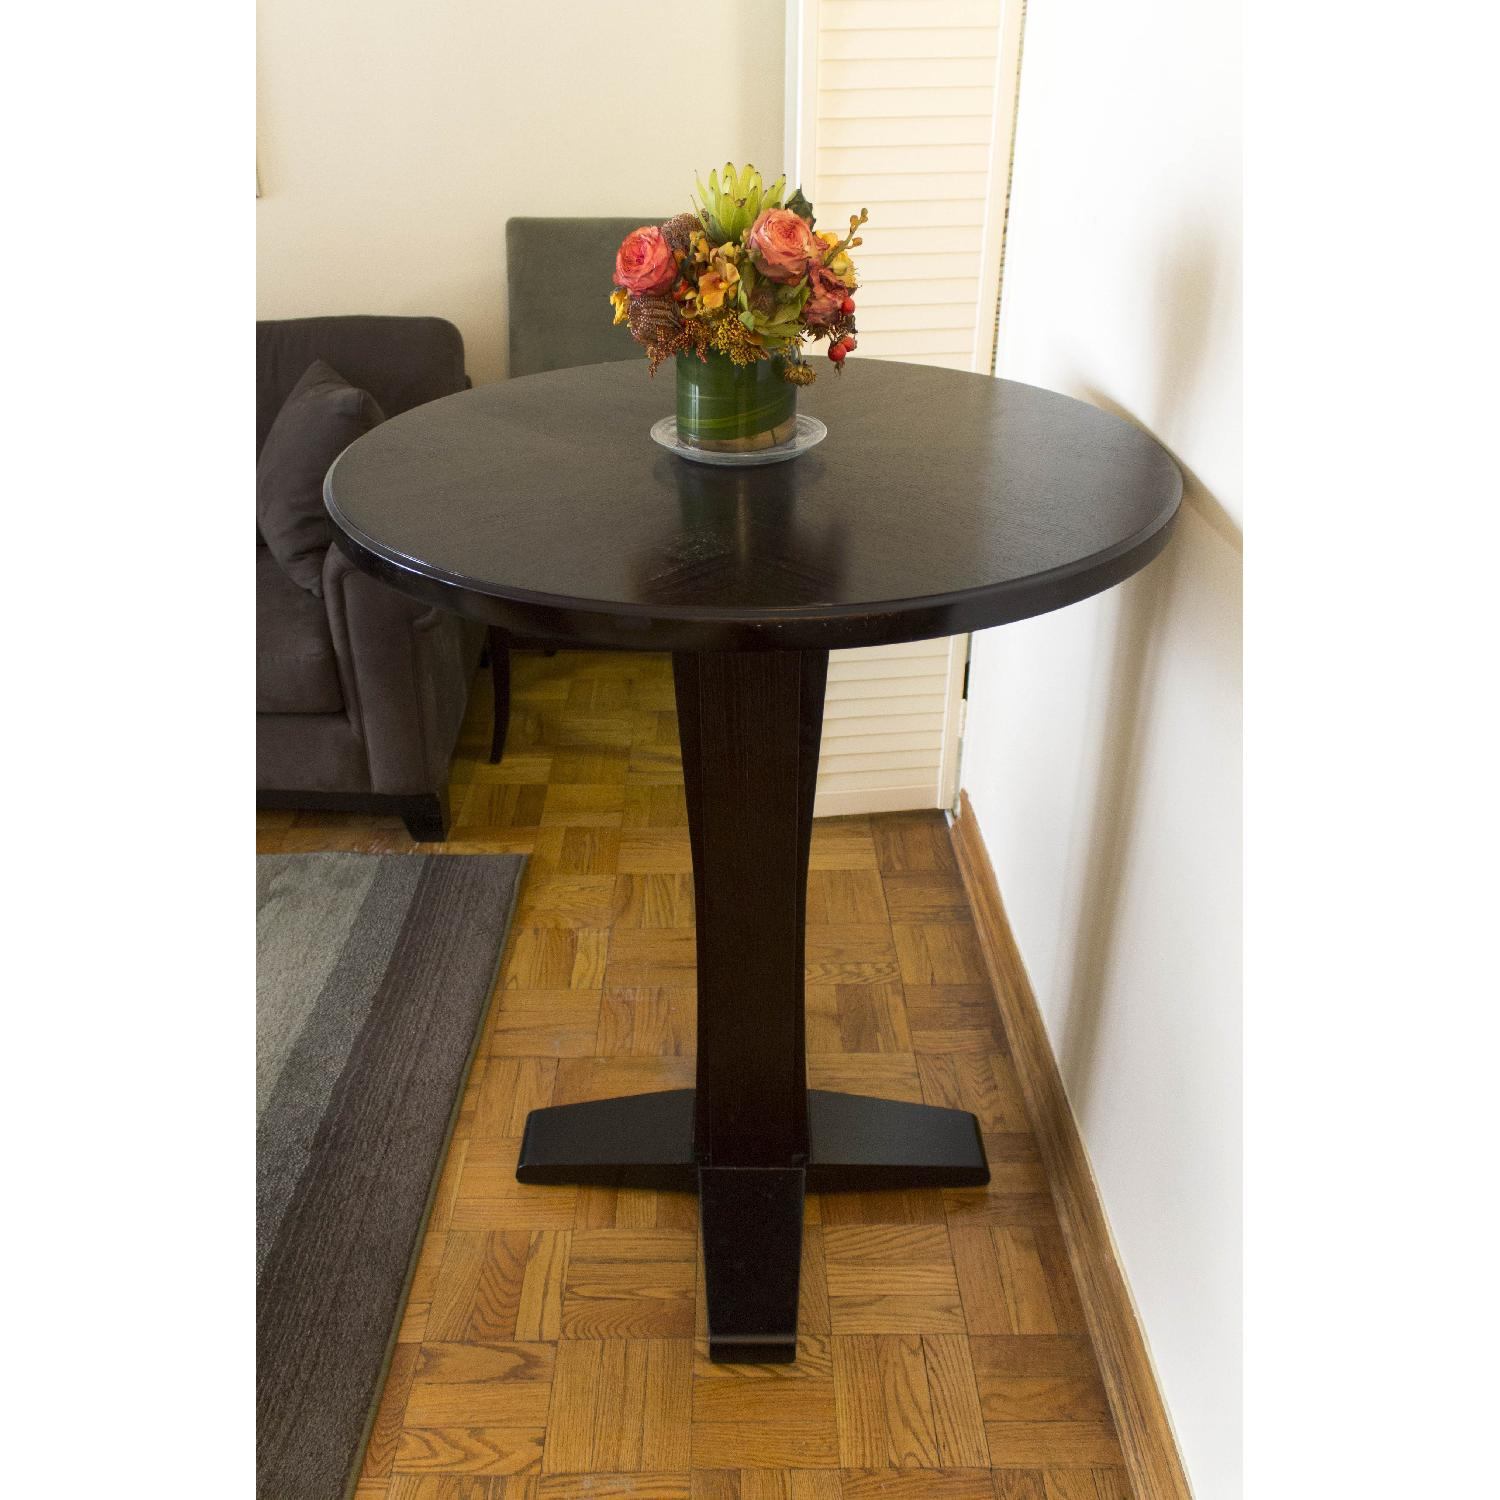 Crate & Barrel High Cafe Table - image-3